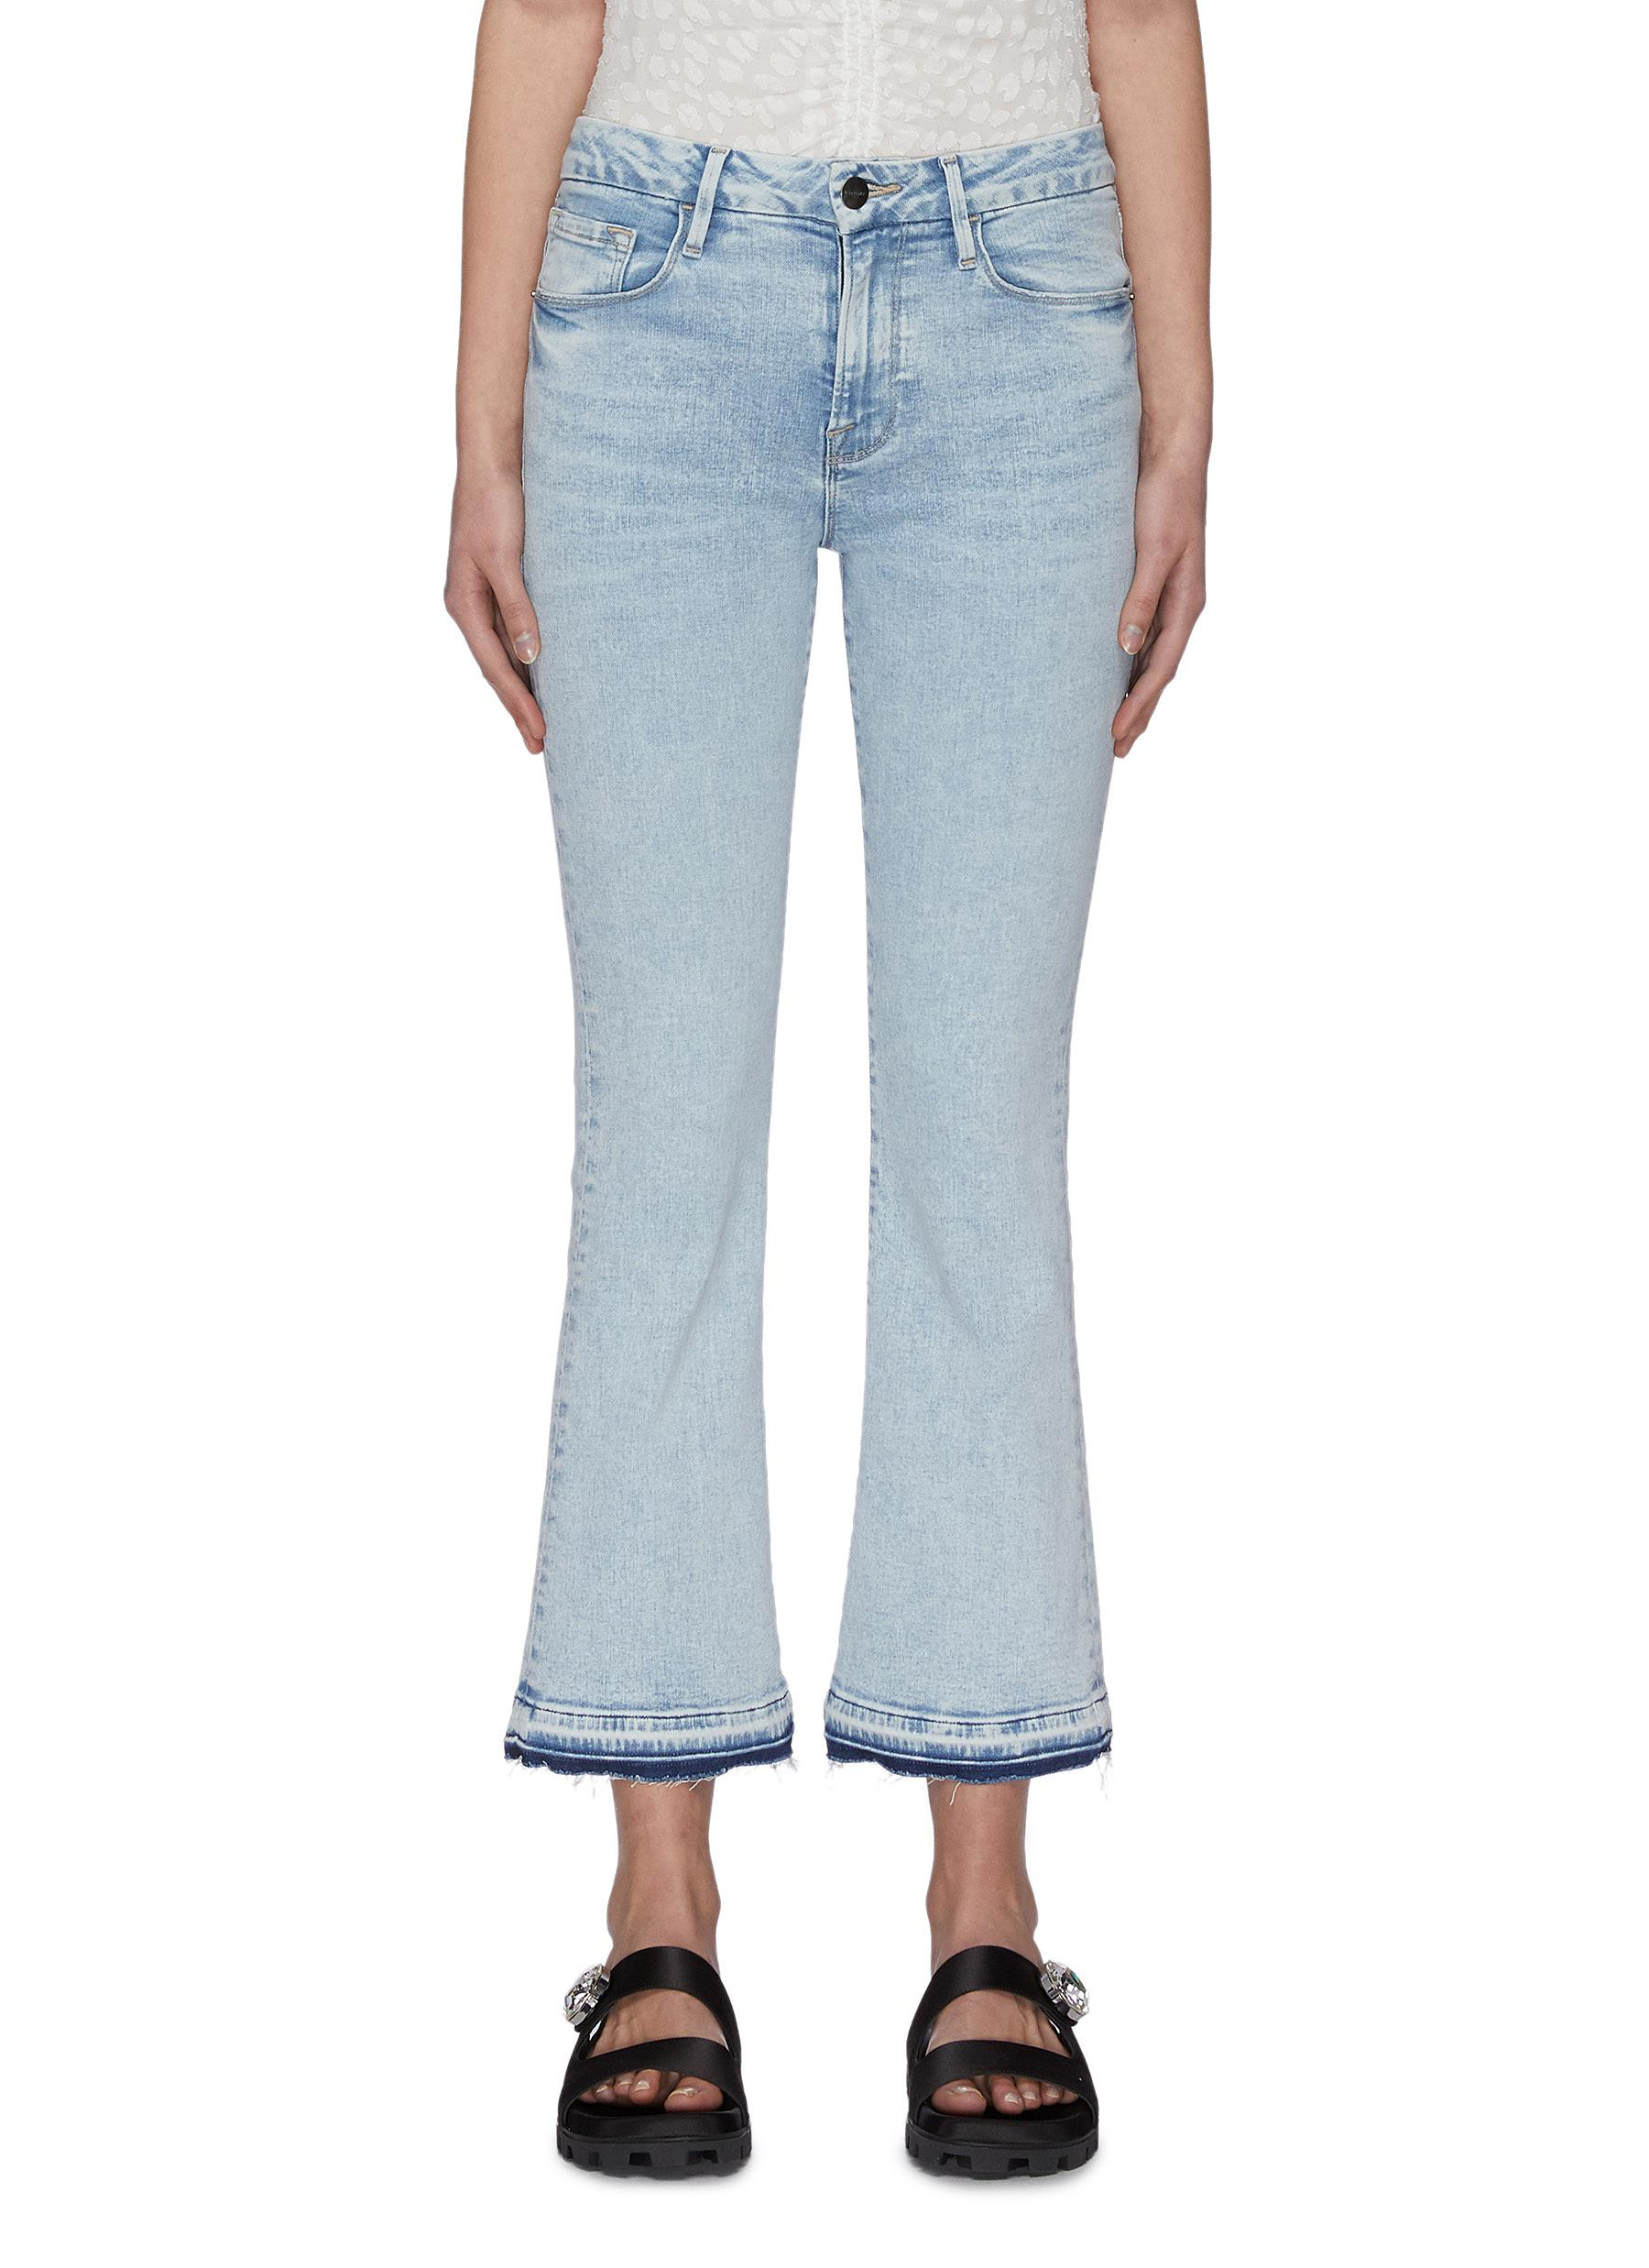 Buy Frame Denim Jeans 'Le Crop Mini Boot' released hem jeans